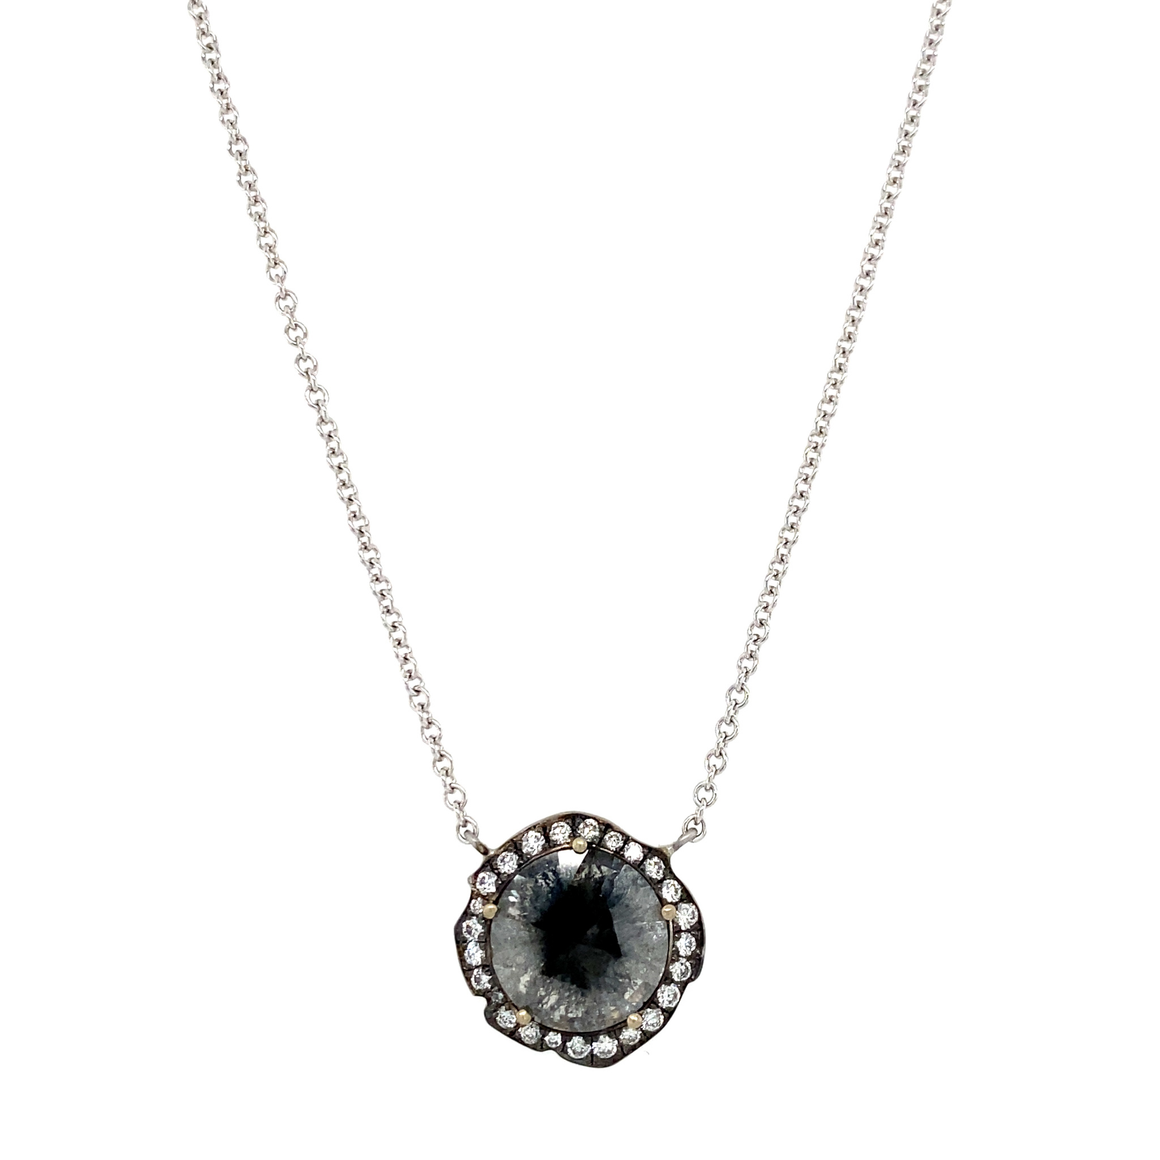 Rough Diamond Slice Pendant on Chain - Lesley Ann Jewels